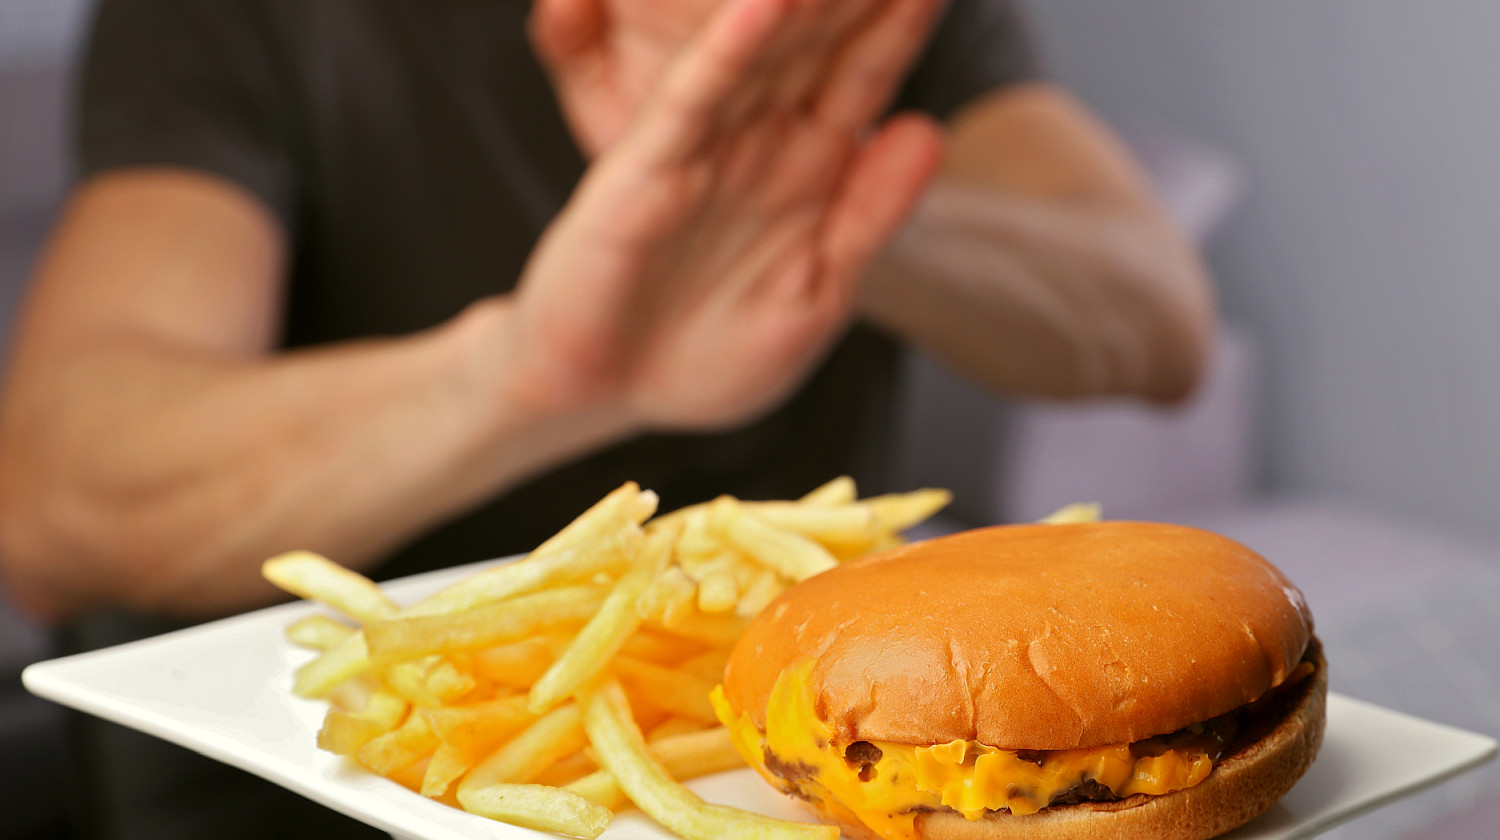 Feature | Man refuses to eat junk food | Reasons To Stop Eating Processed Foods And 10 Healthy Swaps